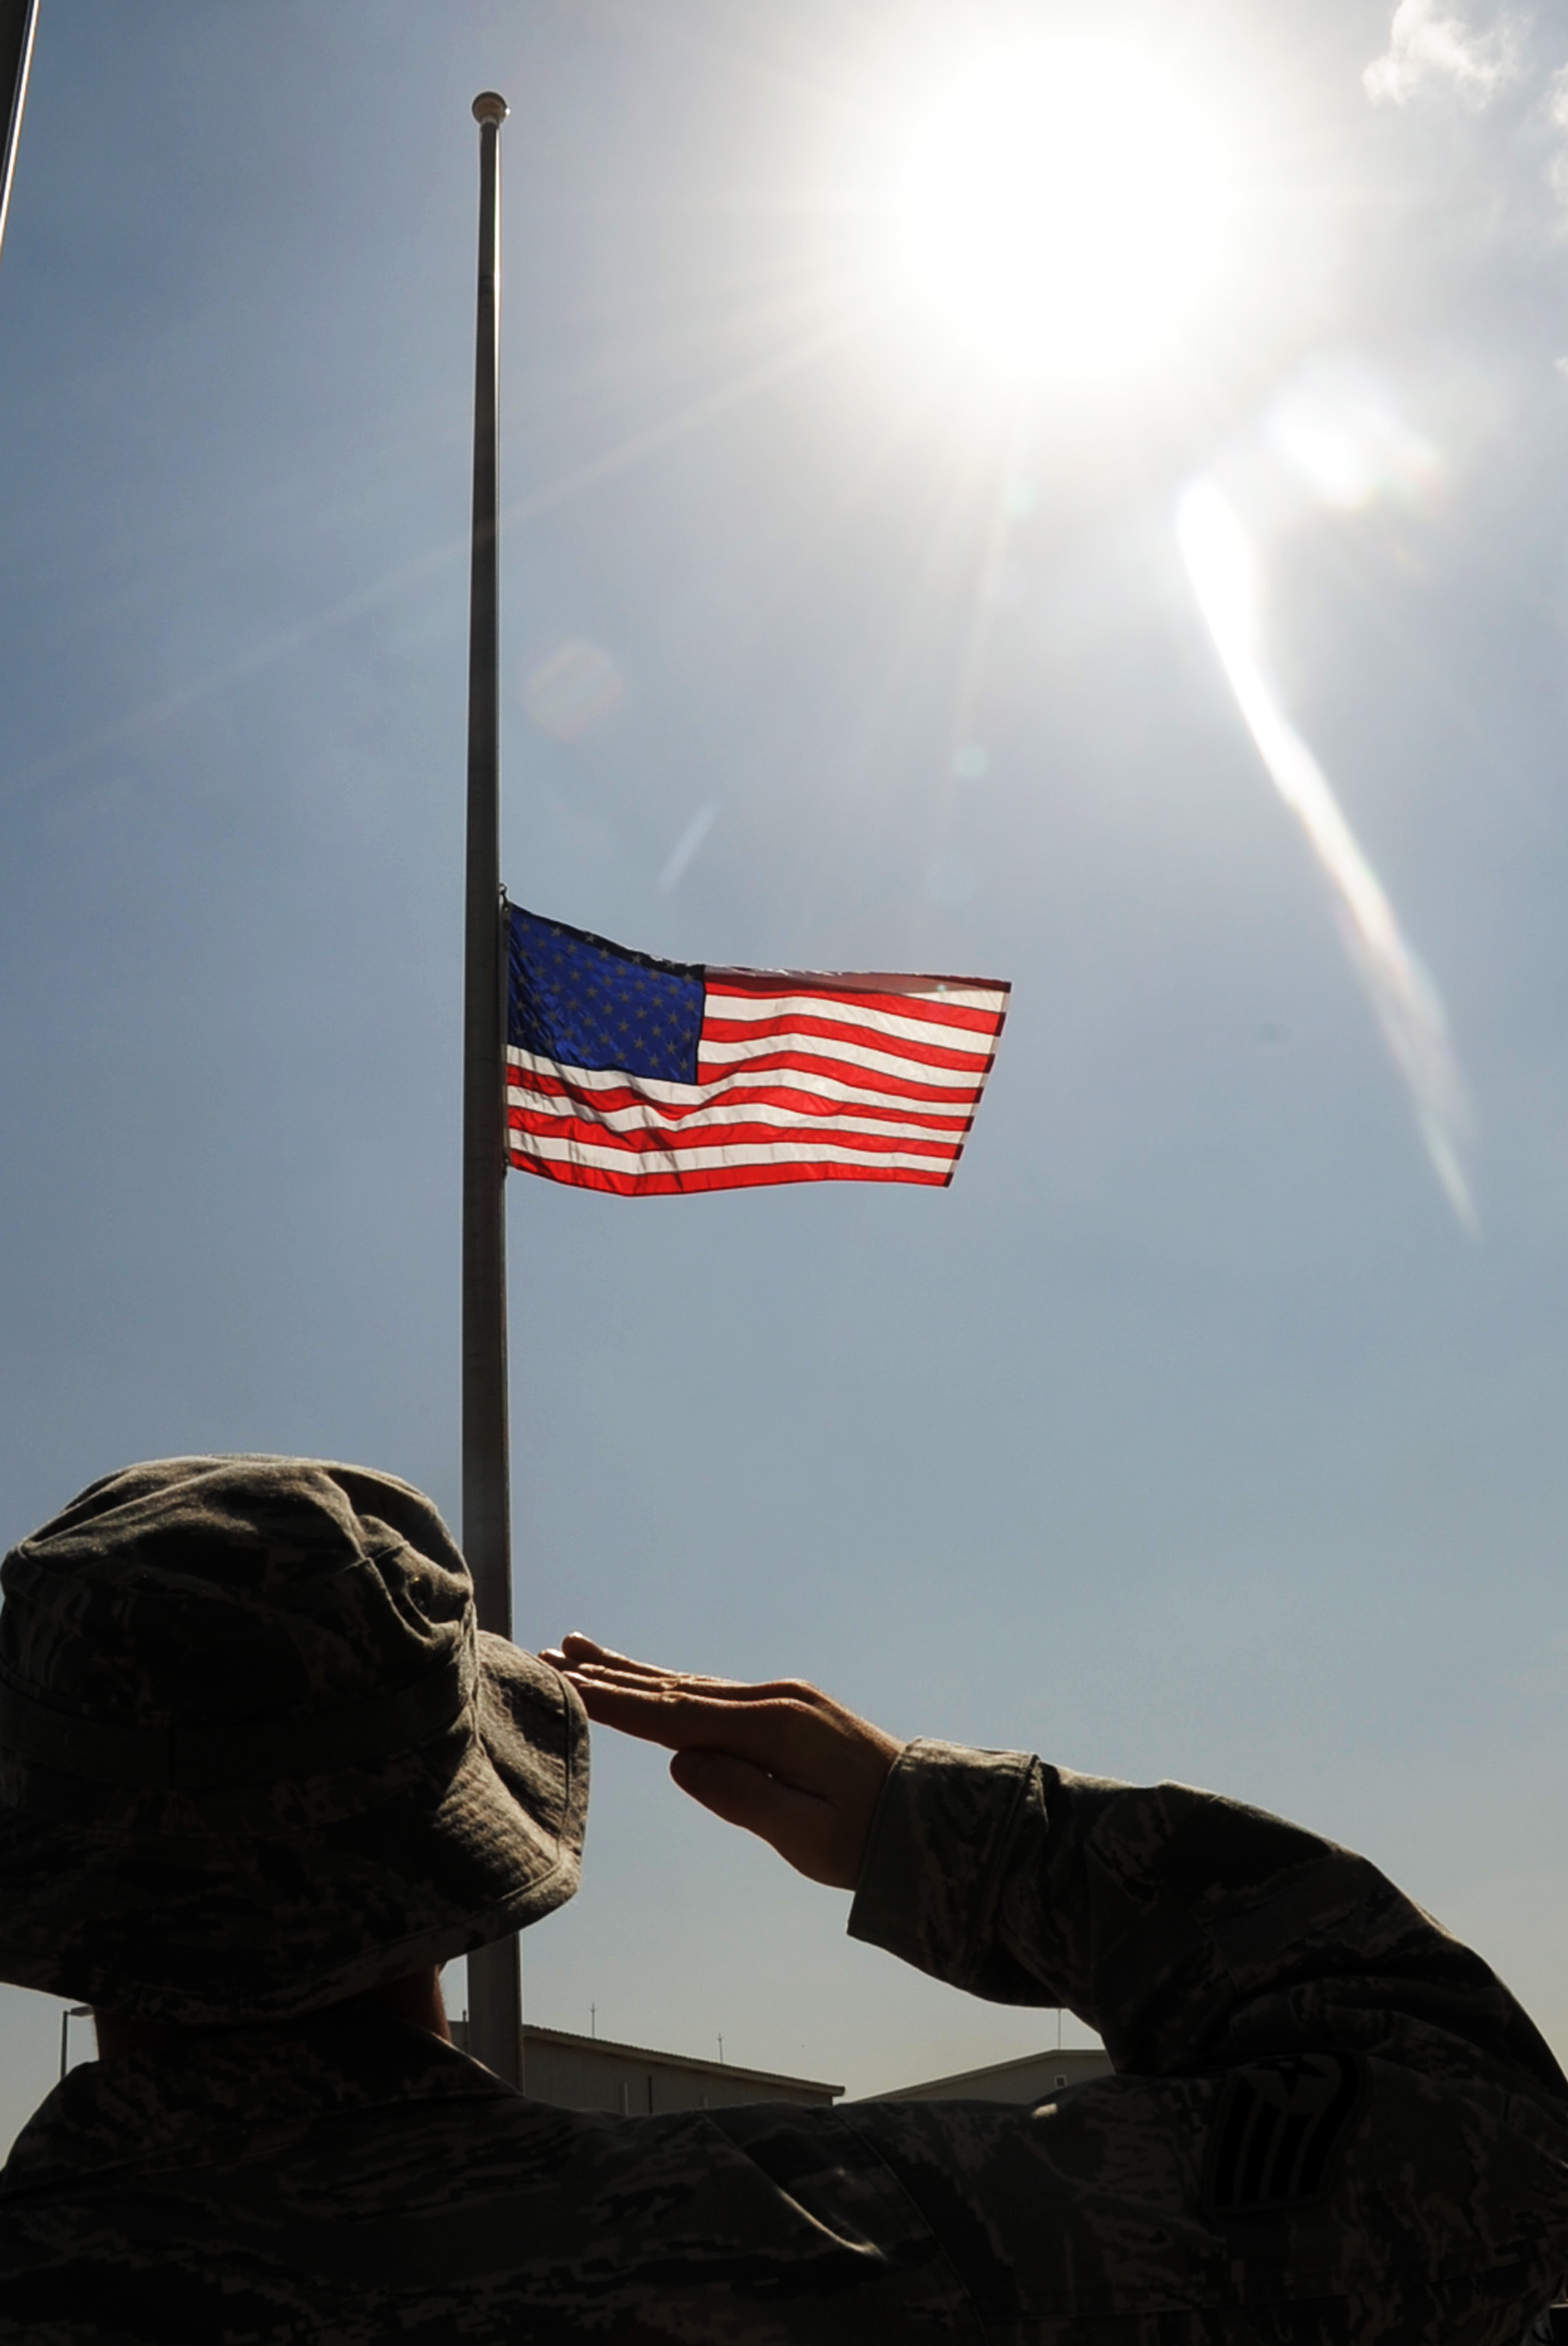 An Airman assigned to the 380th Air Expeditionary Wing at a non-disclosed base in Southwest Asia salutes the American flag, Feb. 9, that is flying at half-mast in honor of U.S. Representive John Murtha of Pennsylvania who died, Feb. 8. Representative Murtha was a military veteran who earned the Bronze Star and two Purple Hearts during the Vietnam War. Military installations around the world flew the flag at half-mast Feb. 9 in honor of Representative Murtha by declaration from President Barack Obama.